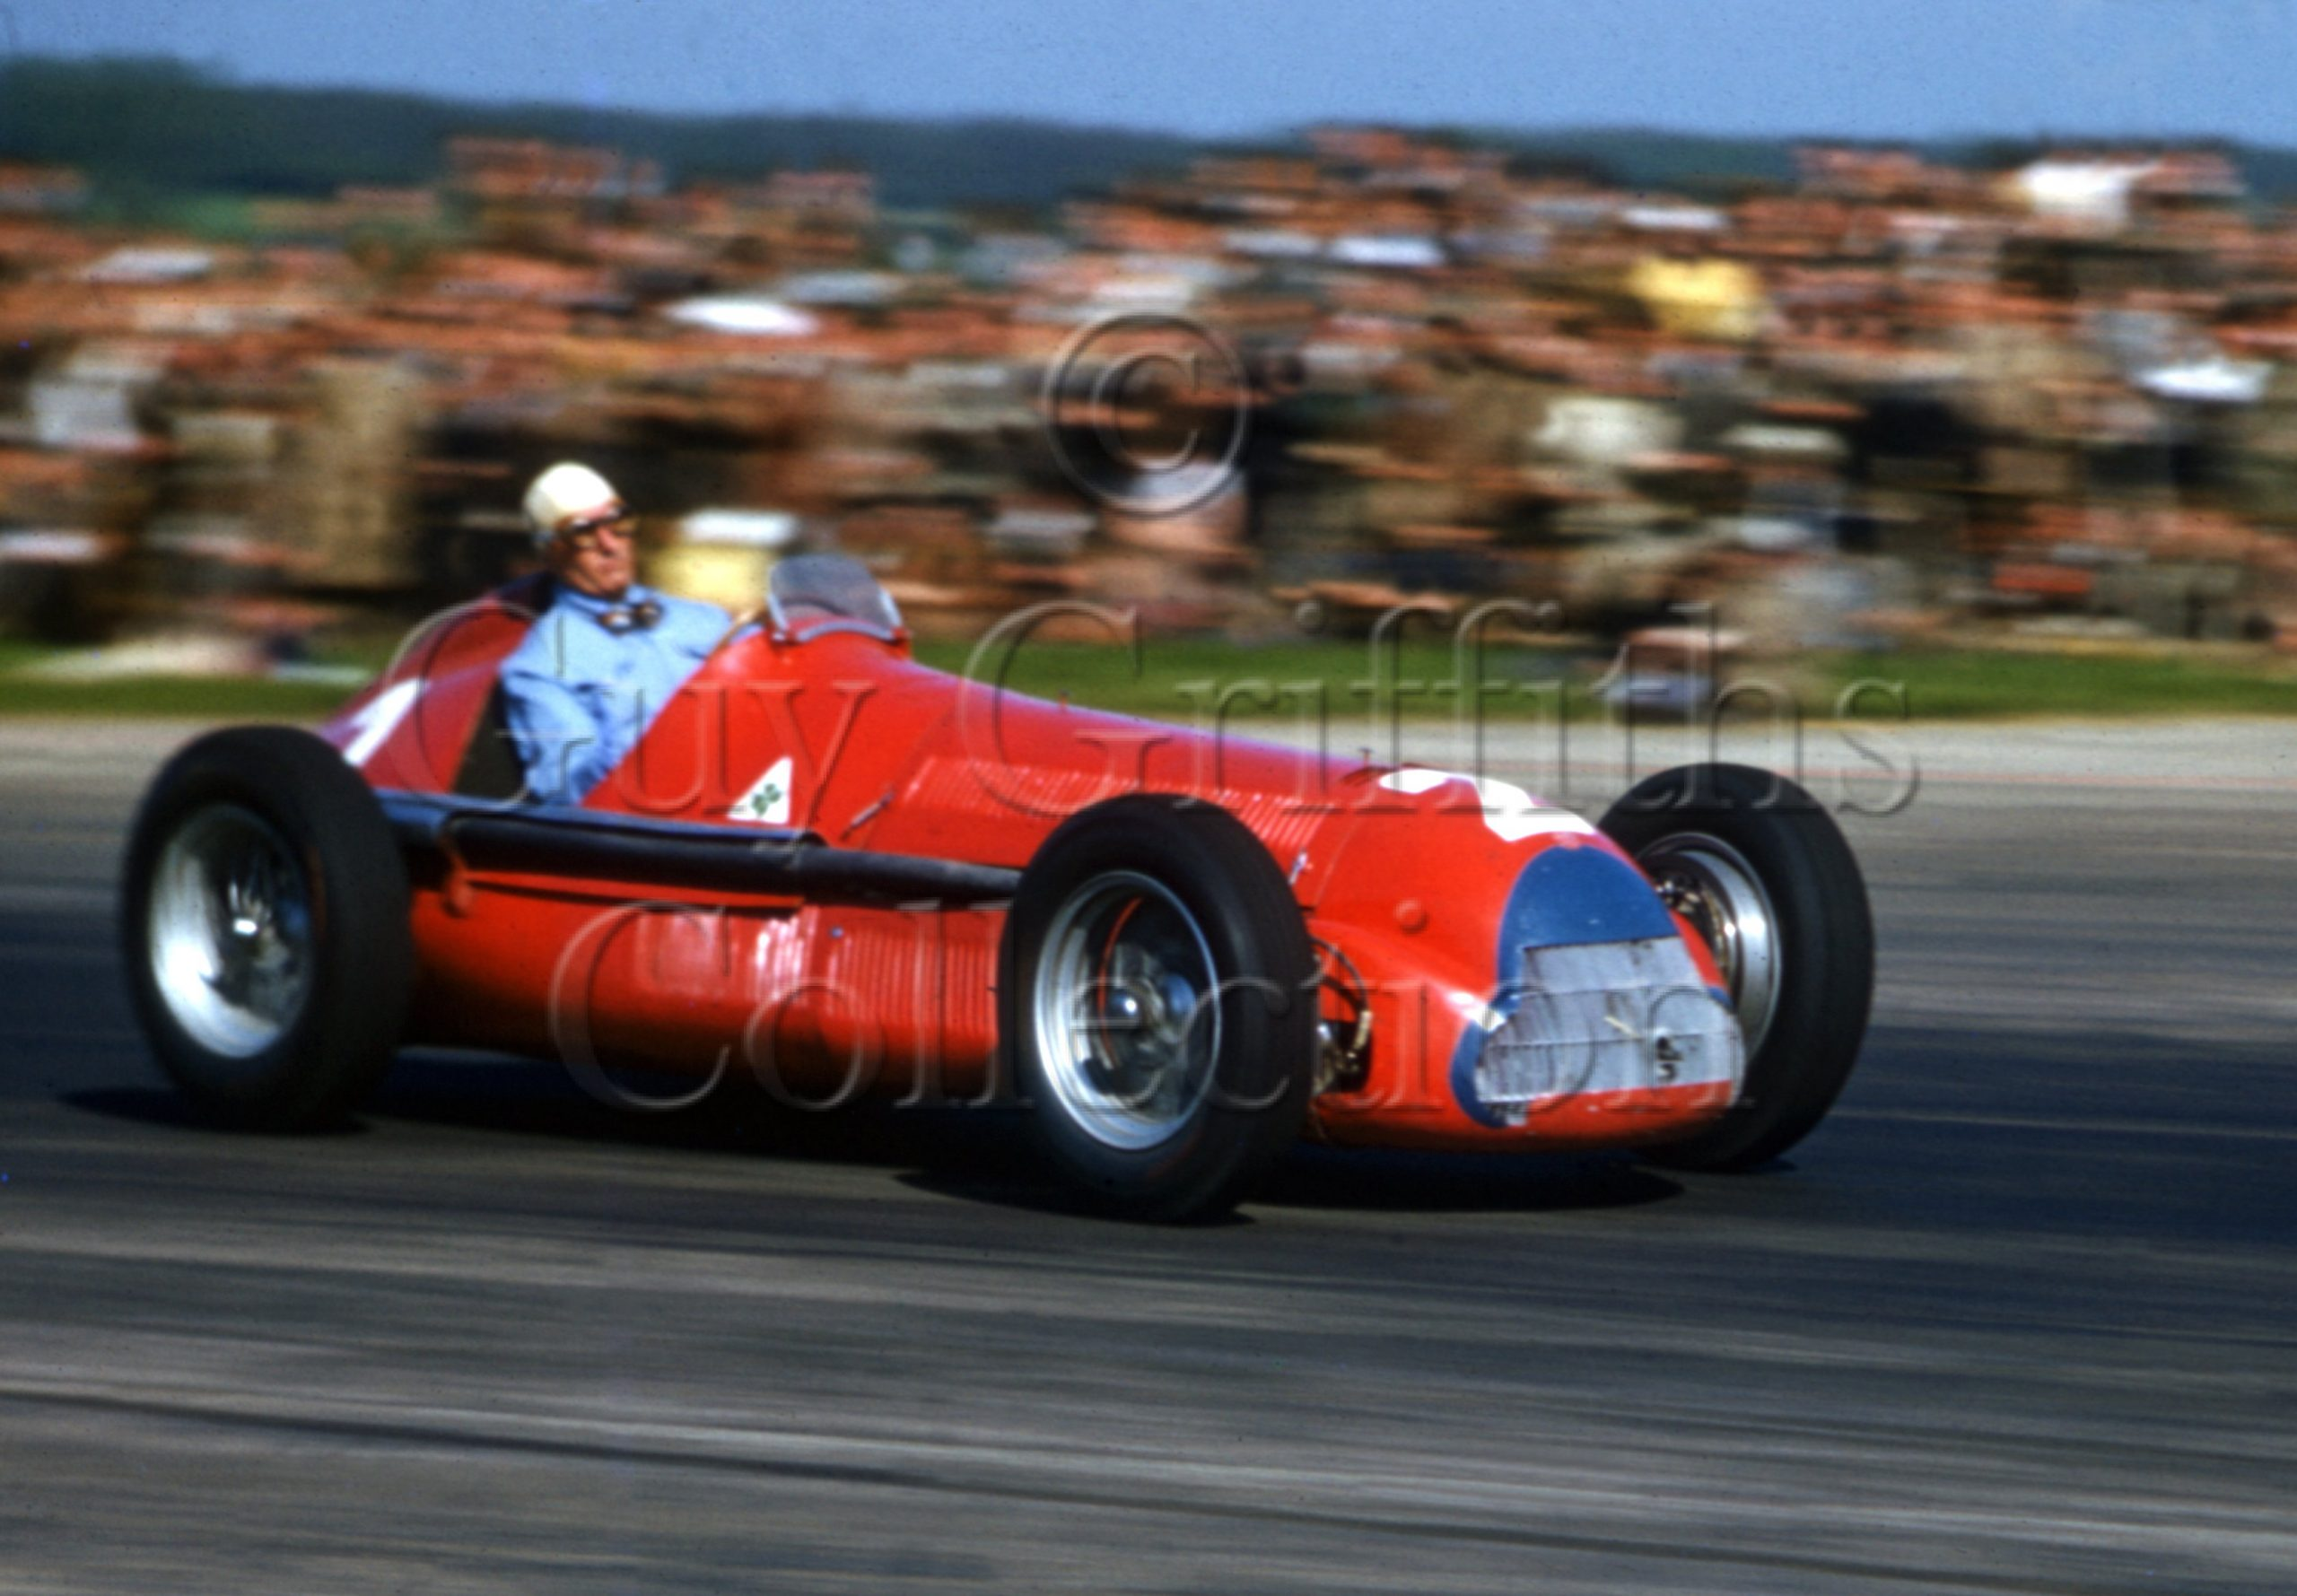 C-3-16–N-Farina–Alfa-Romeo-158–Silverstone–13-05-1950.jpg - Guy Griffiths Collection